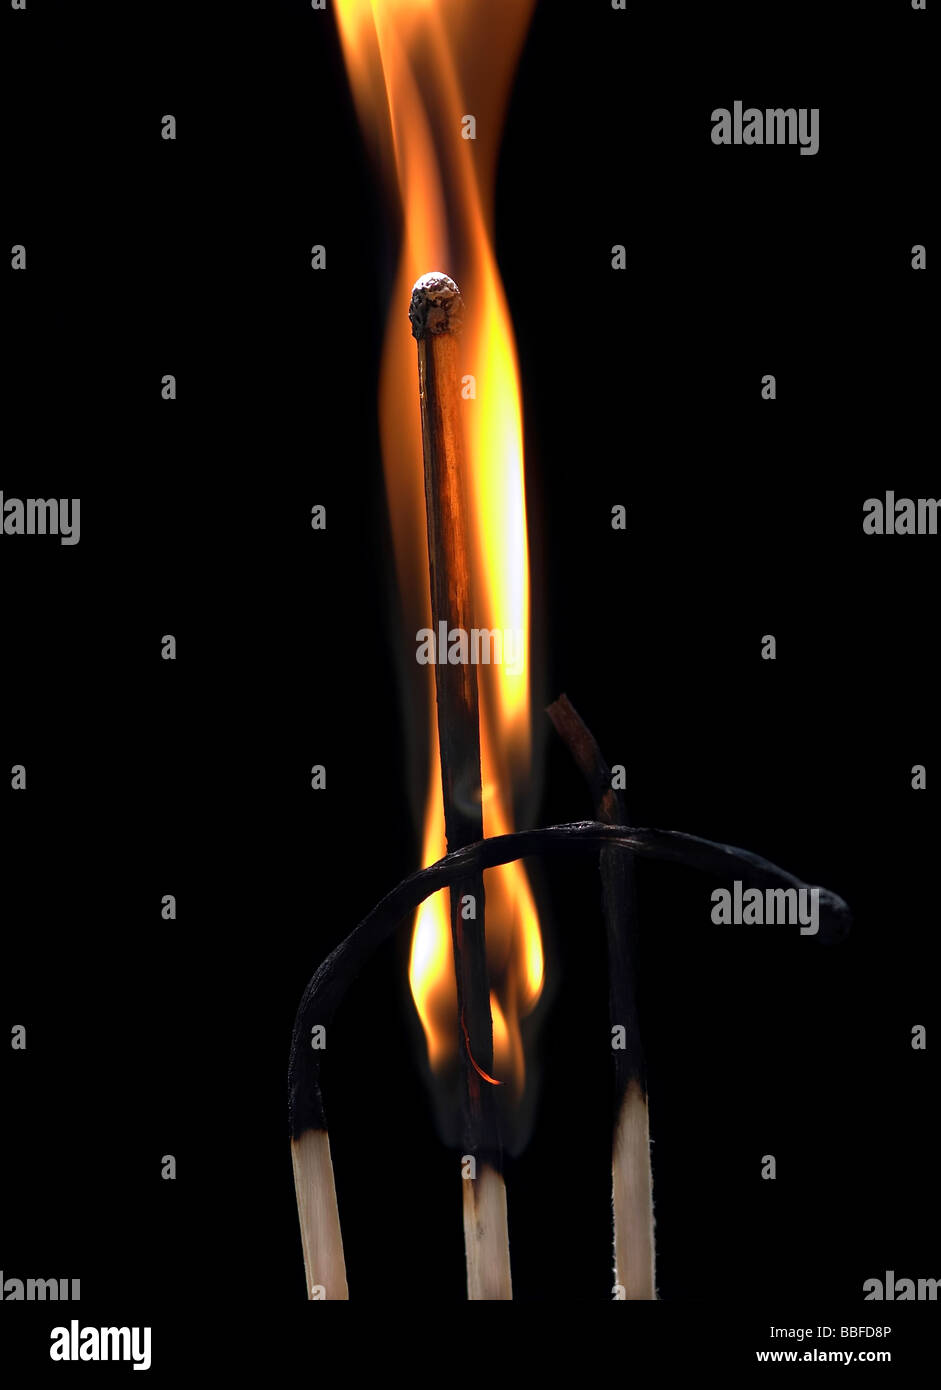 Detail close-up of the fiery matches - Stock Image